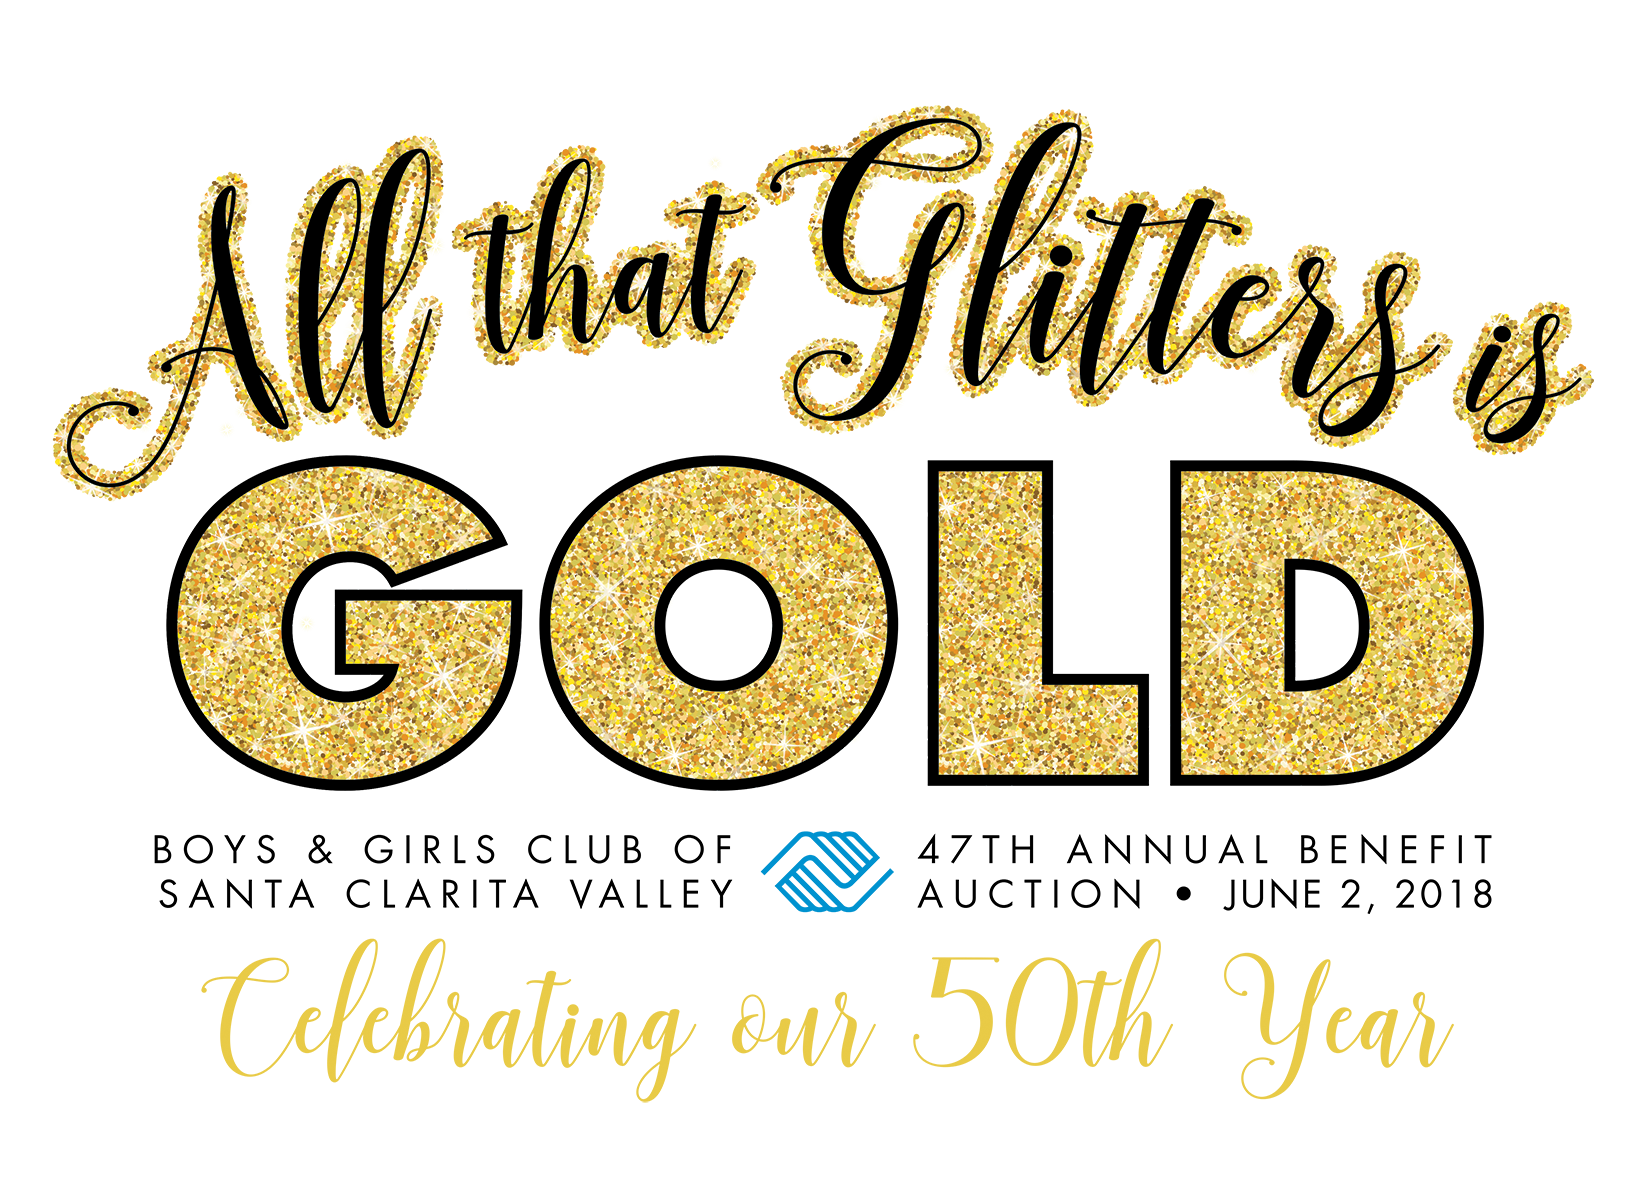 Glitter clipart 50 gold. All that glitters is